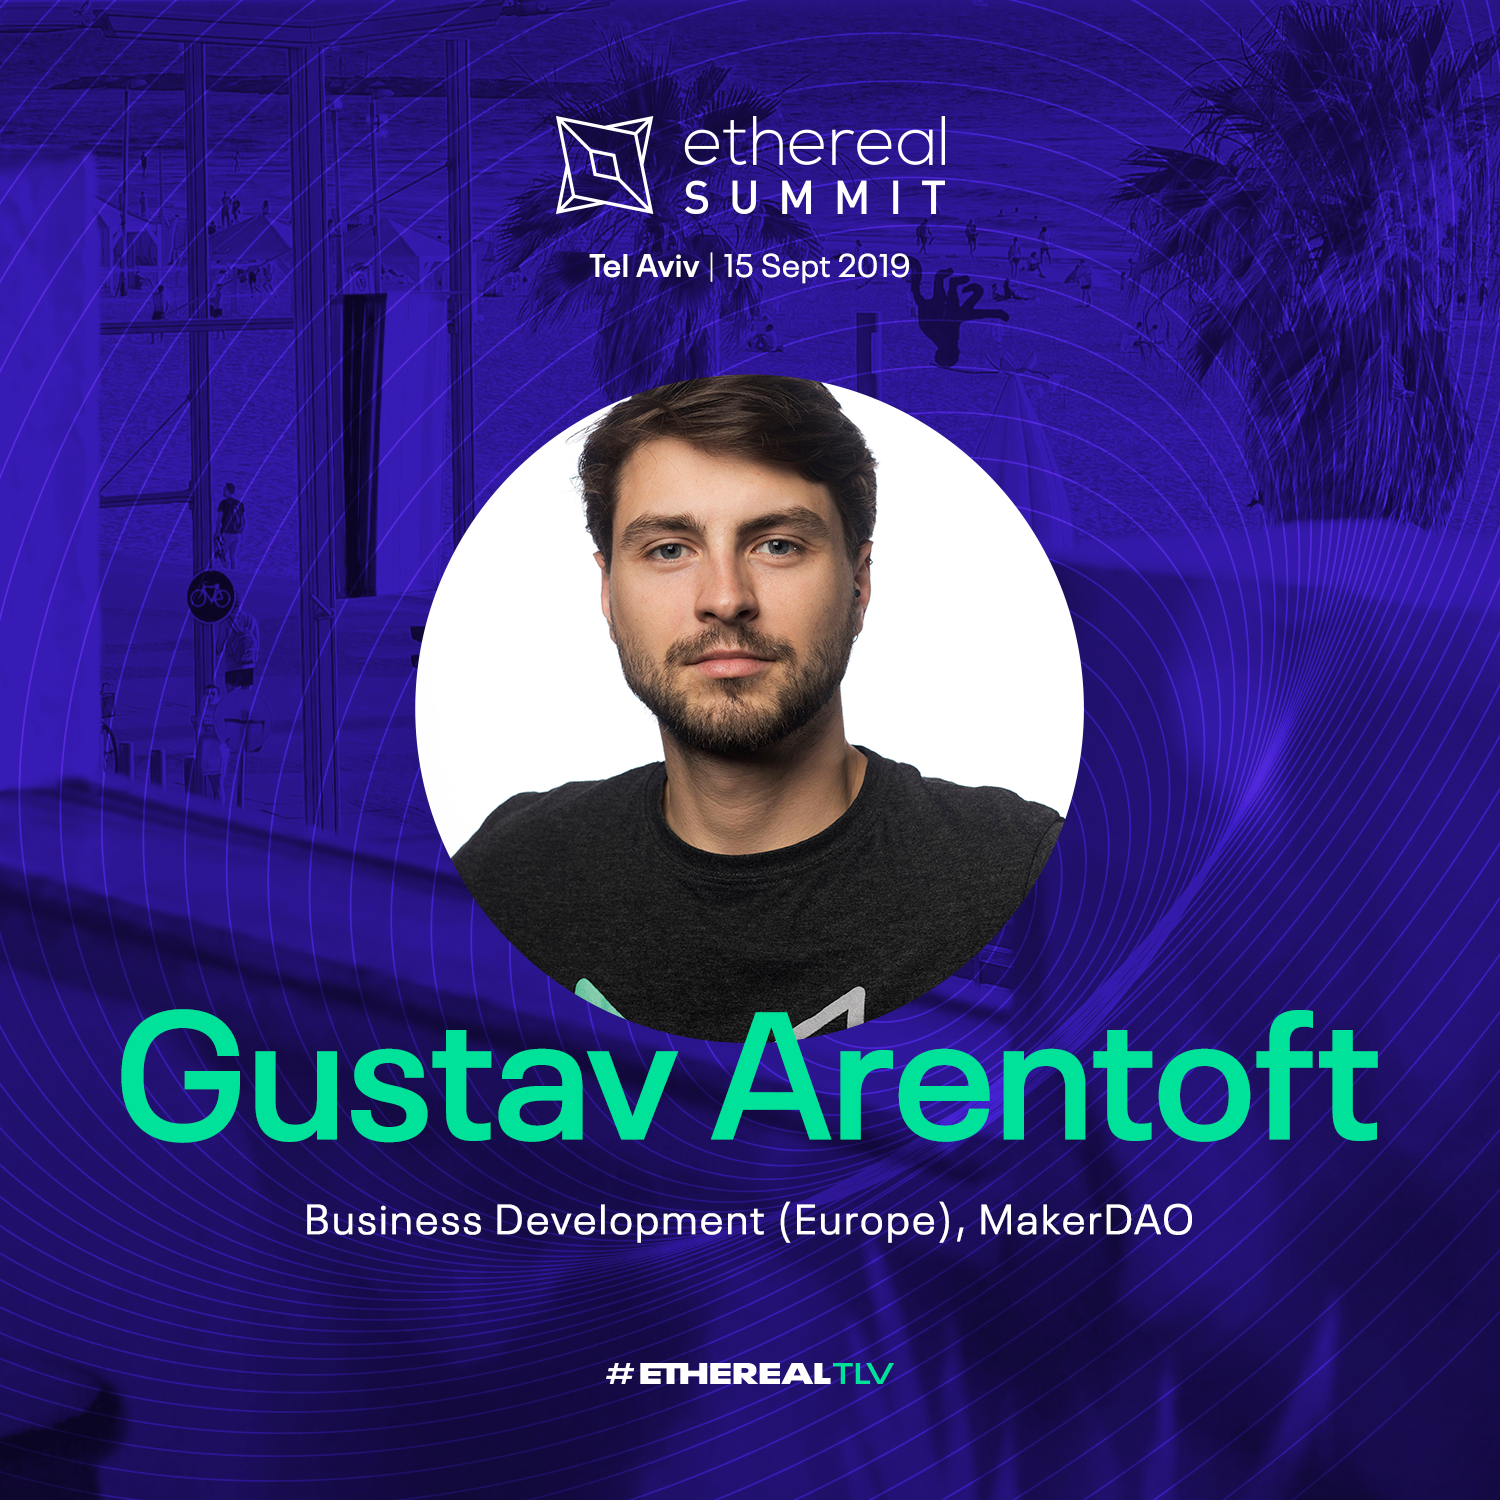 ethereal-tlv-2019-speaker-cards-square-gustav-arentoft.png